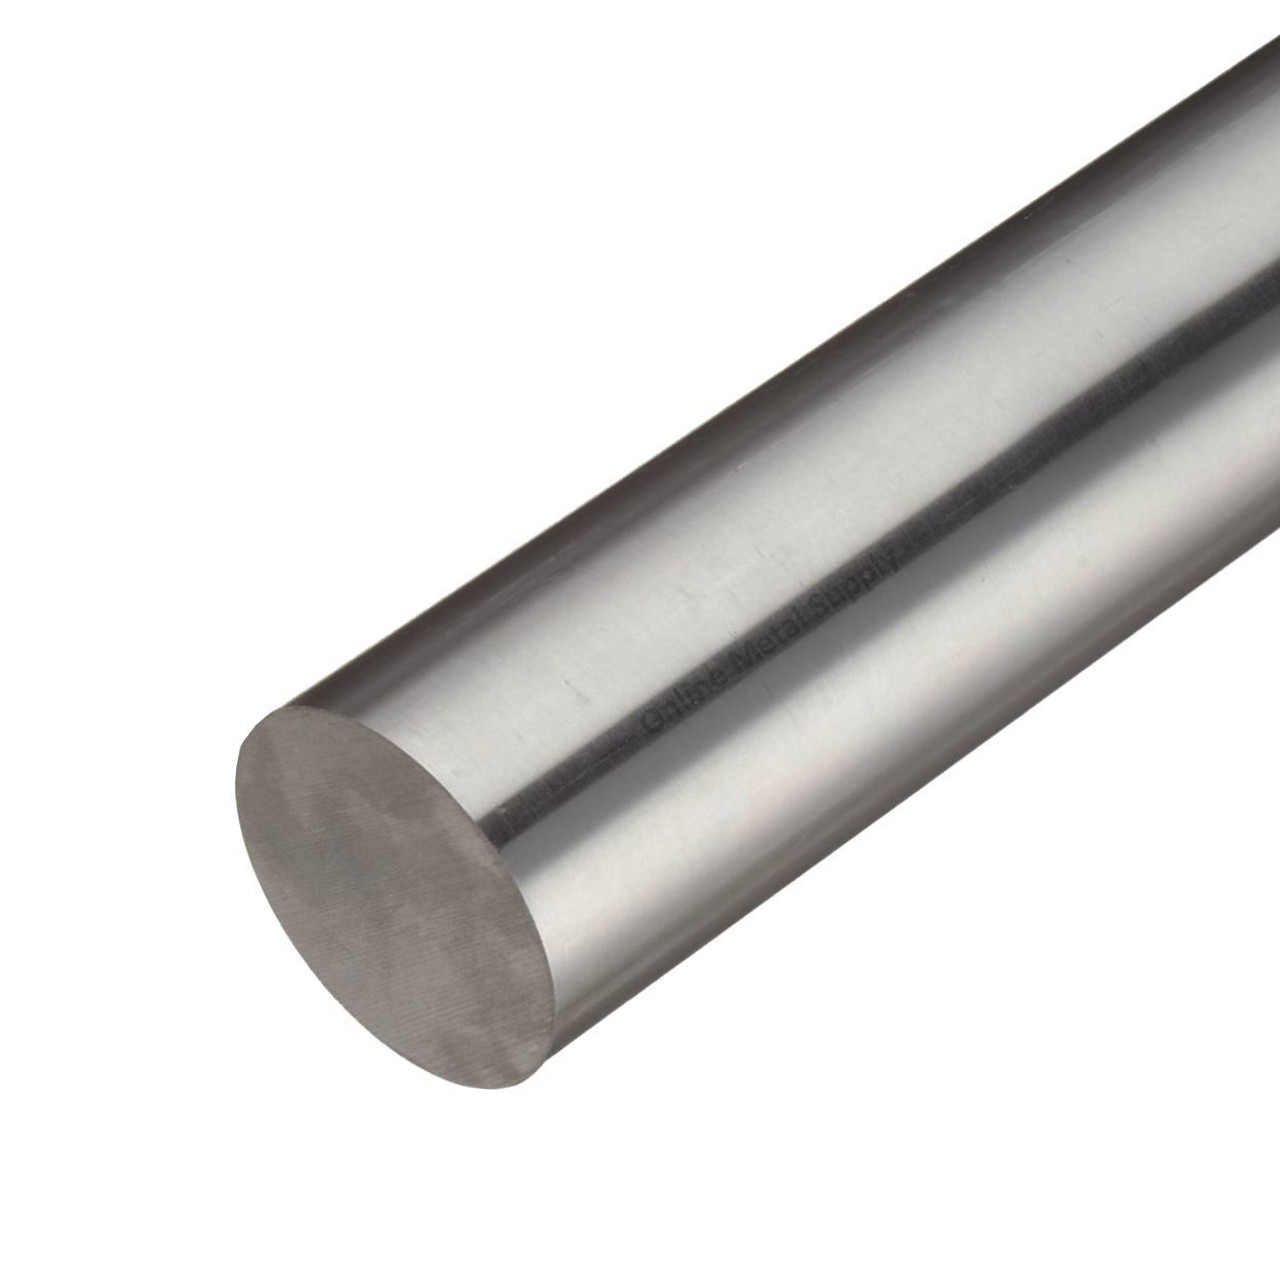 0.500 (1/2 inch) x 72 inches, 17-4 Cond A CF Stainless Steel Round Rod